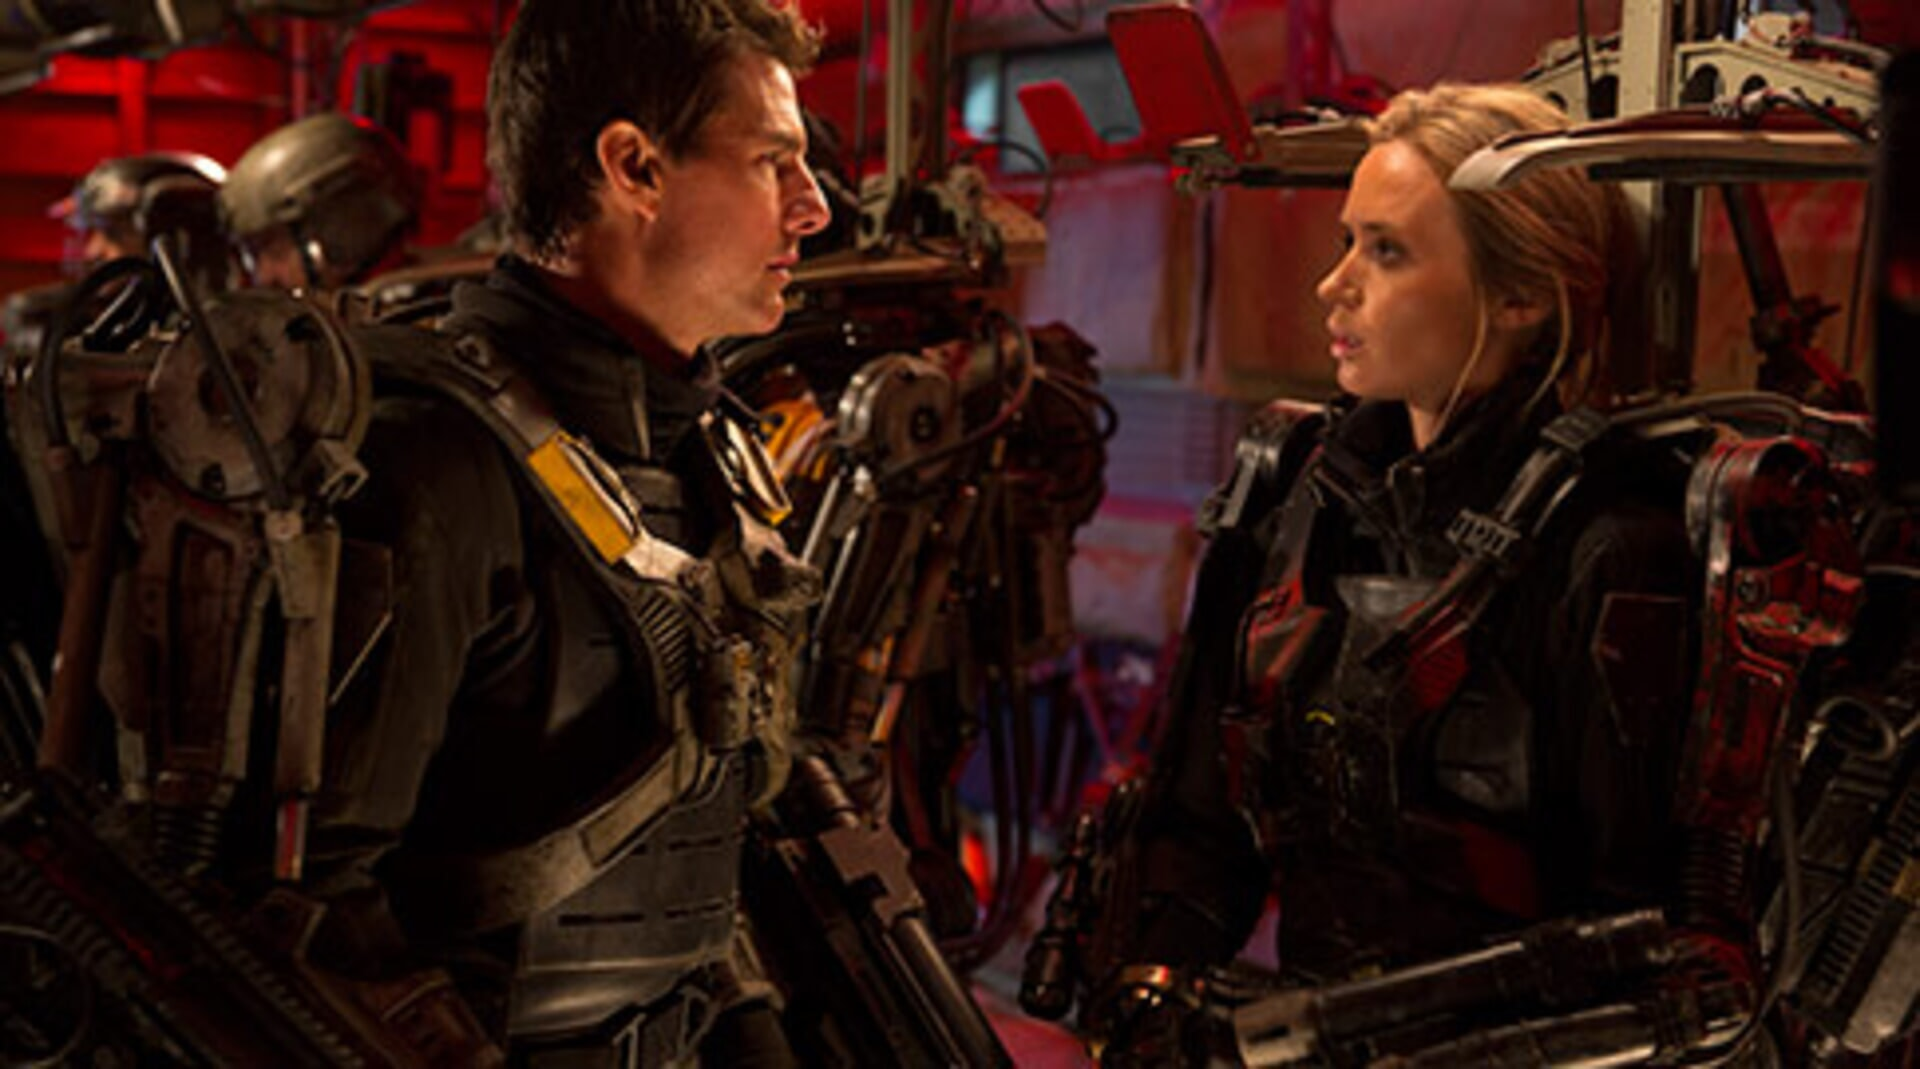 Edge of Tomorrow - Image 28